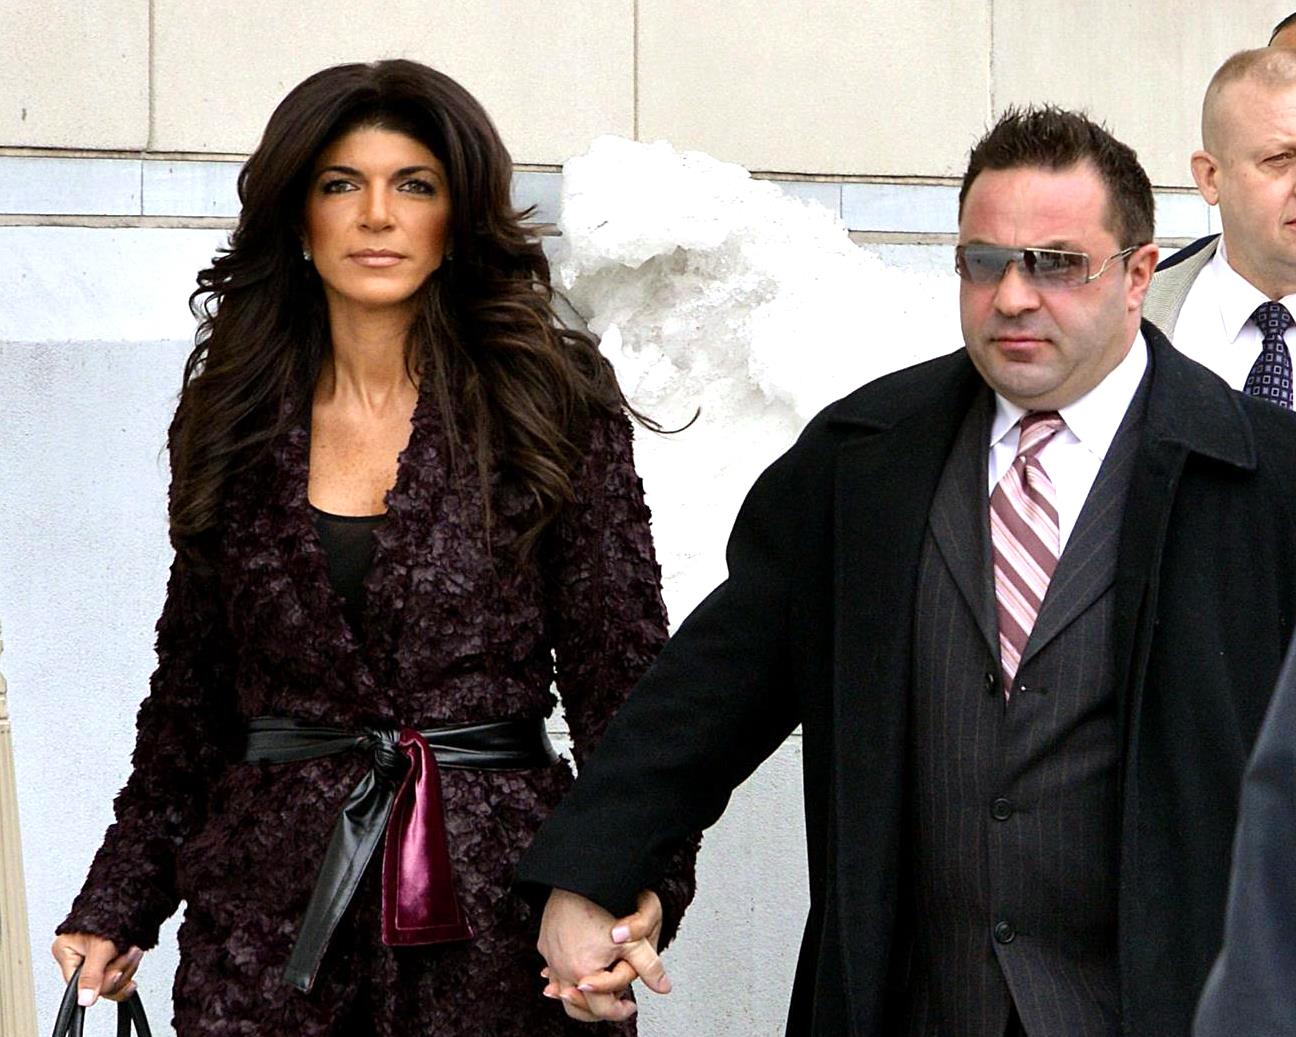 RHONJ Teresa Giudice and Joe Giudice Court Deportation Update